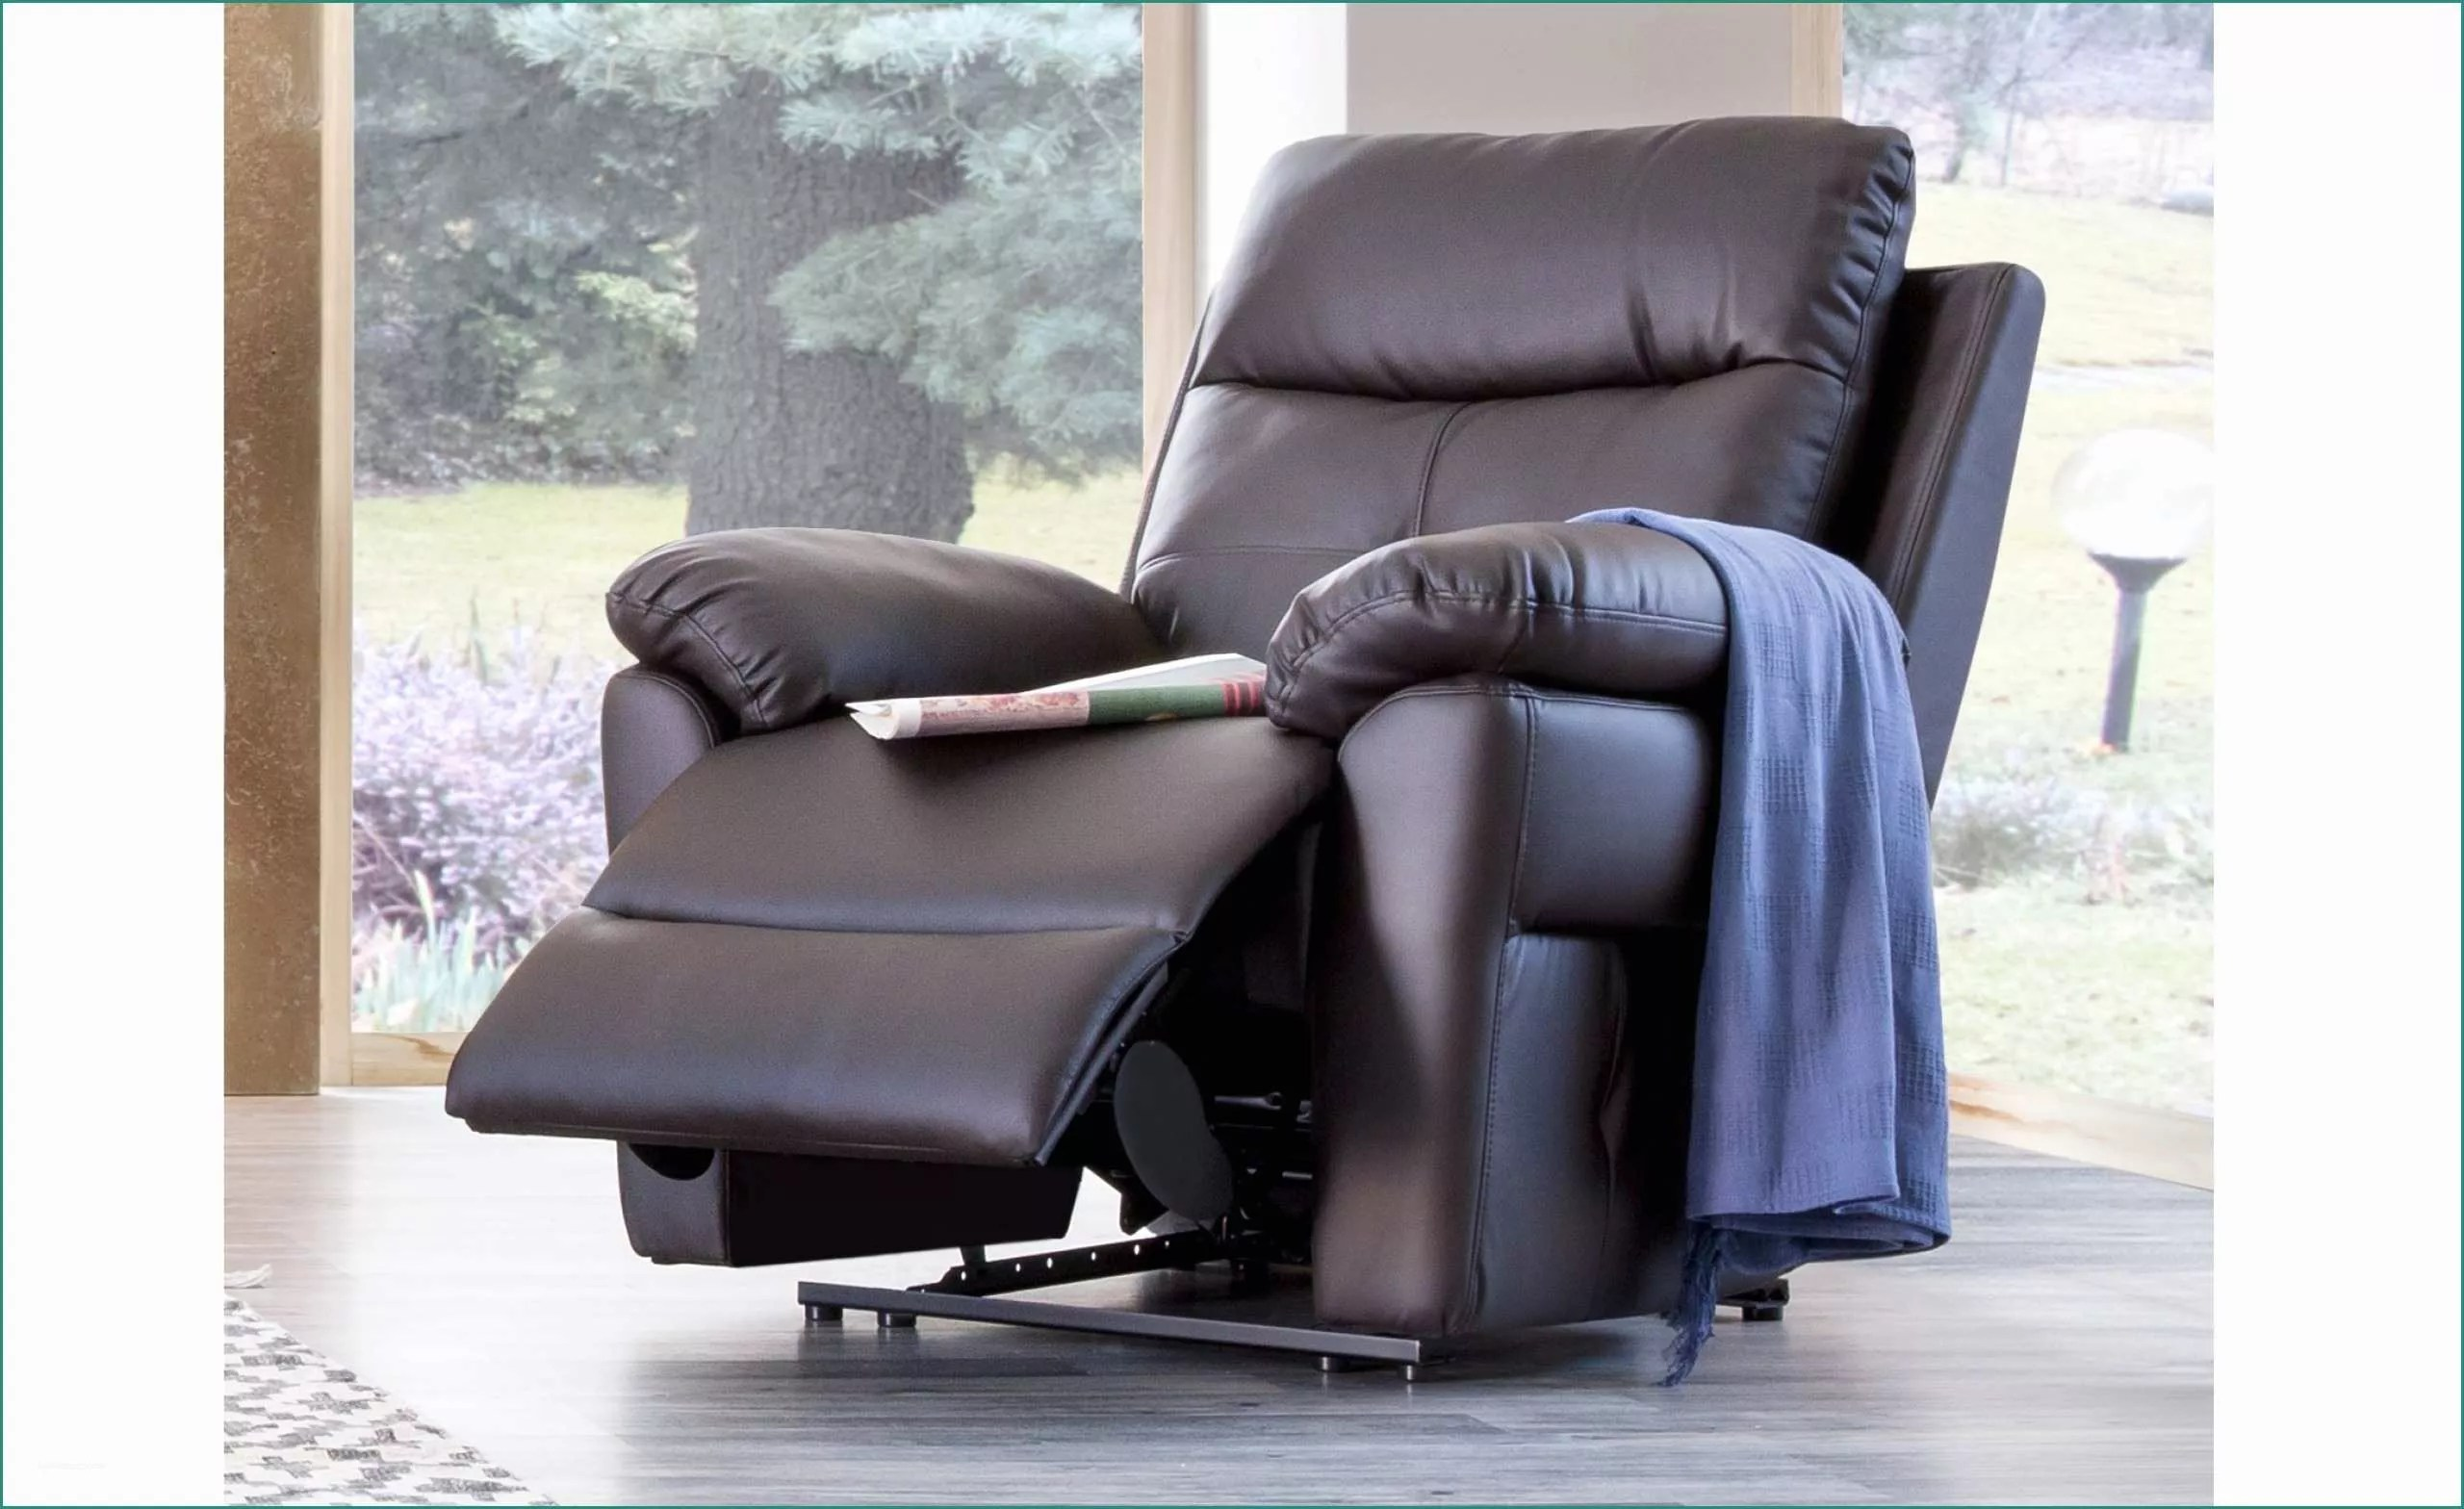 Fauteuil Relax Pas Cher Conforama.Conforama Fauteuil Relax Charles